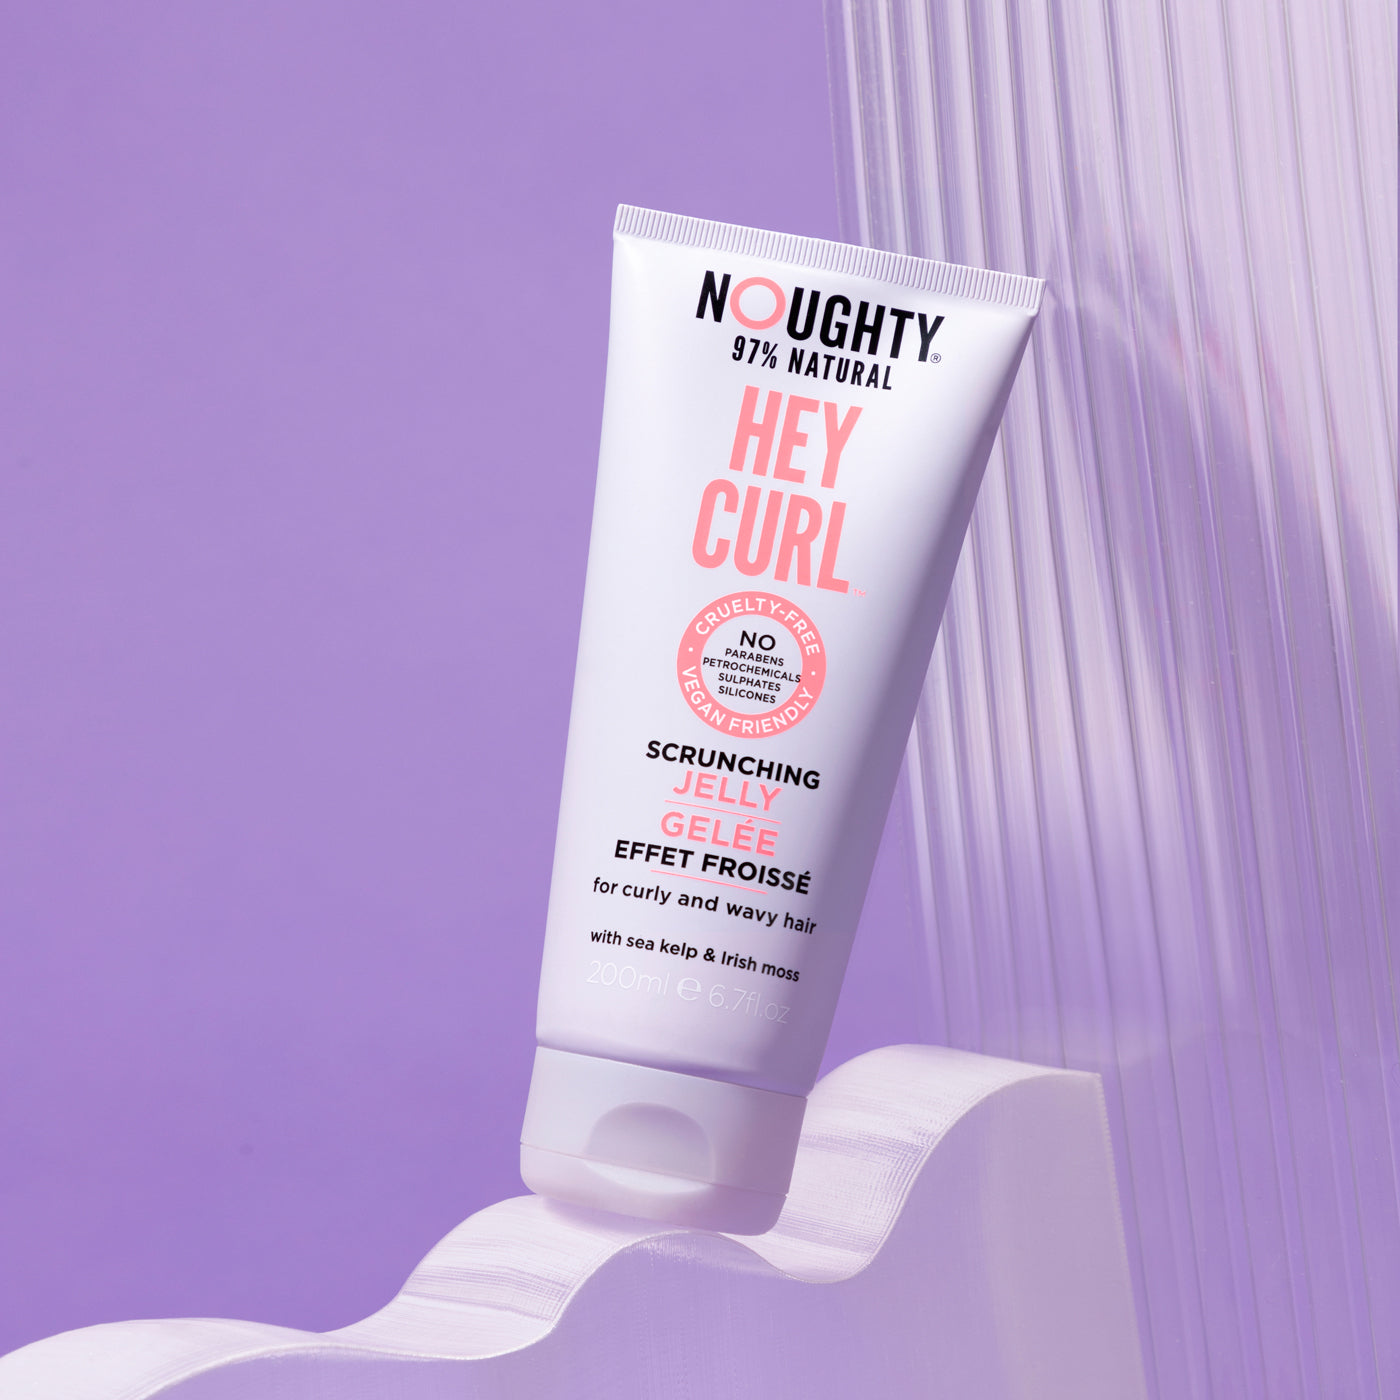 Noughty curl defining scrunching hair gel jelly for curly, wavy hair needing definition and hold. Natural haircare vegan cruelty free natural sulphate free paraben free